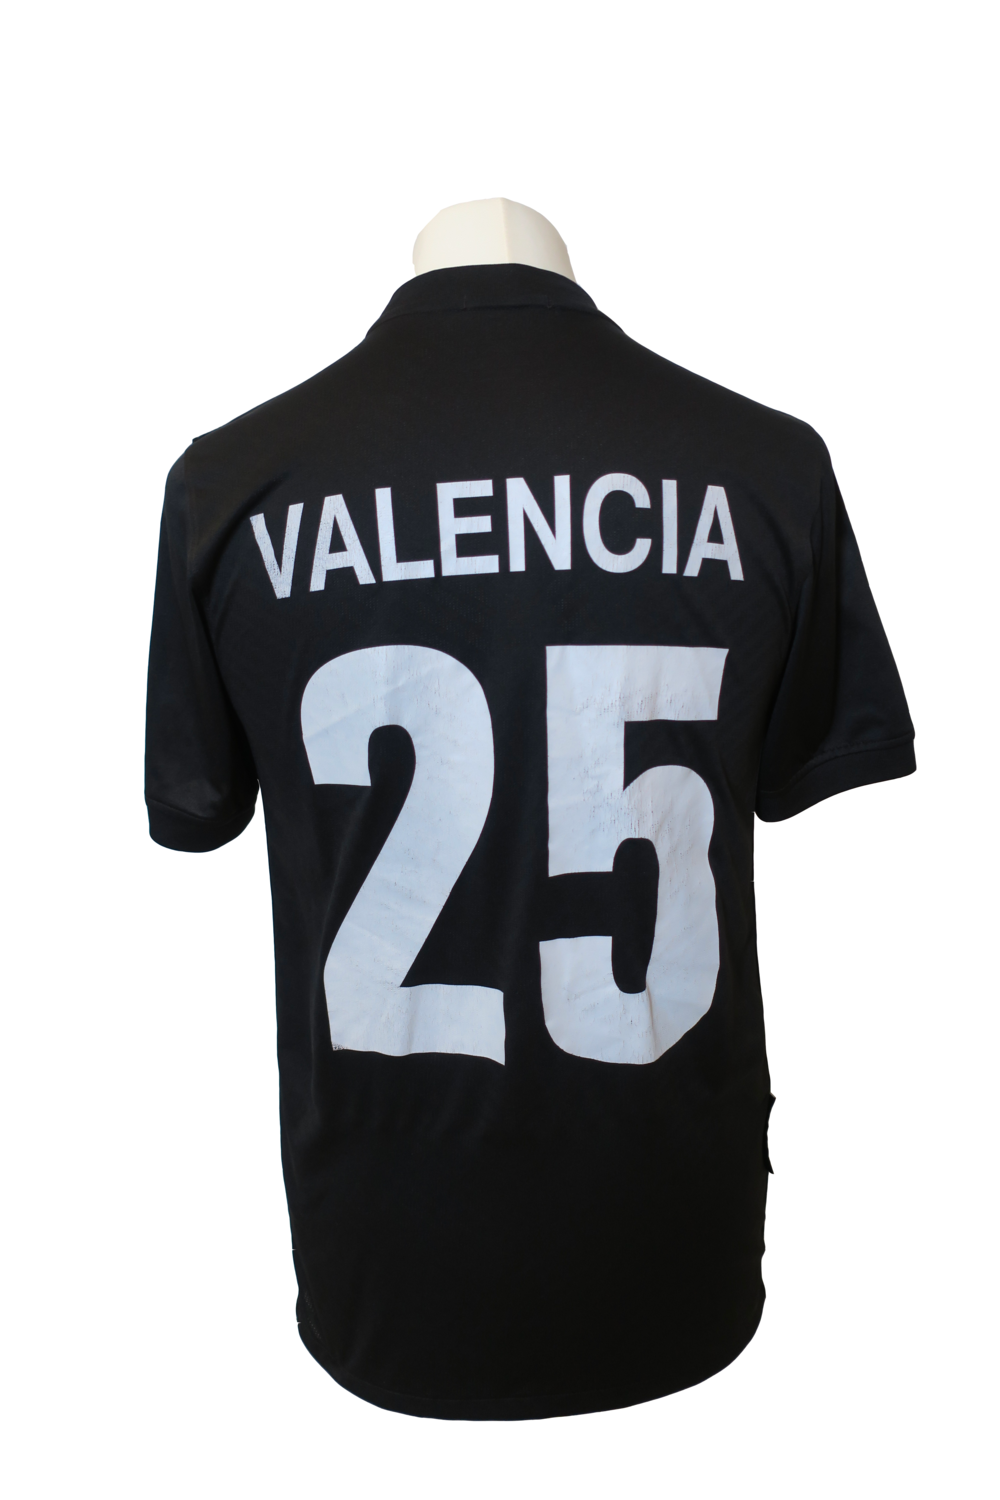 Maillot Manchester United Away Valencia 2009-10